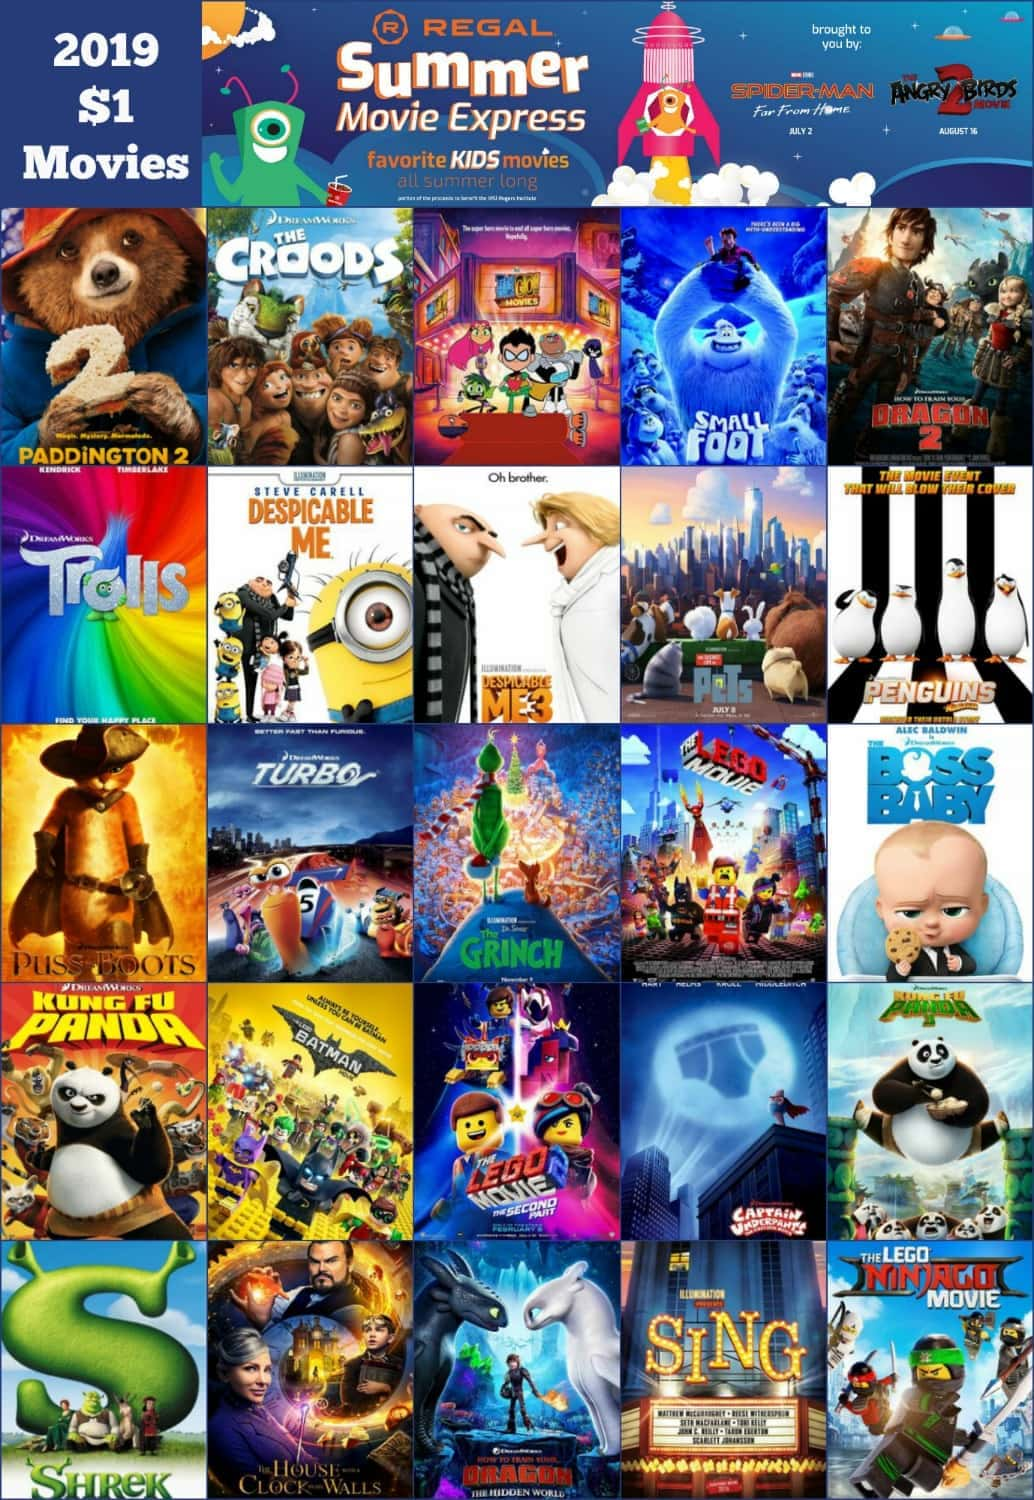 2019 Regal summer movies